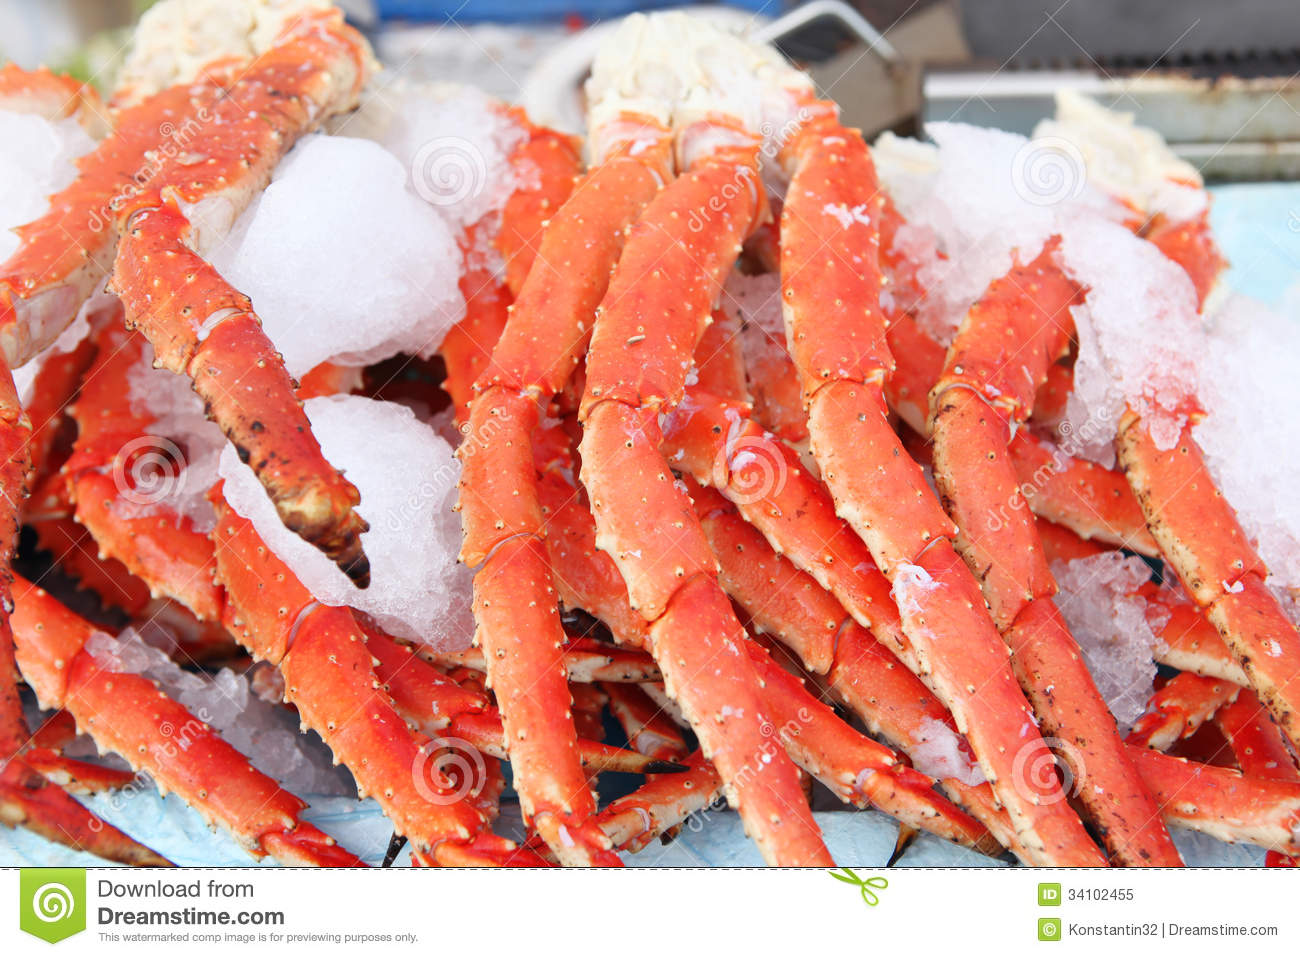 Crab legs at a seafood market stock image image 34102455 for Seafood fish market